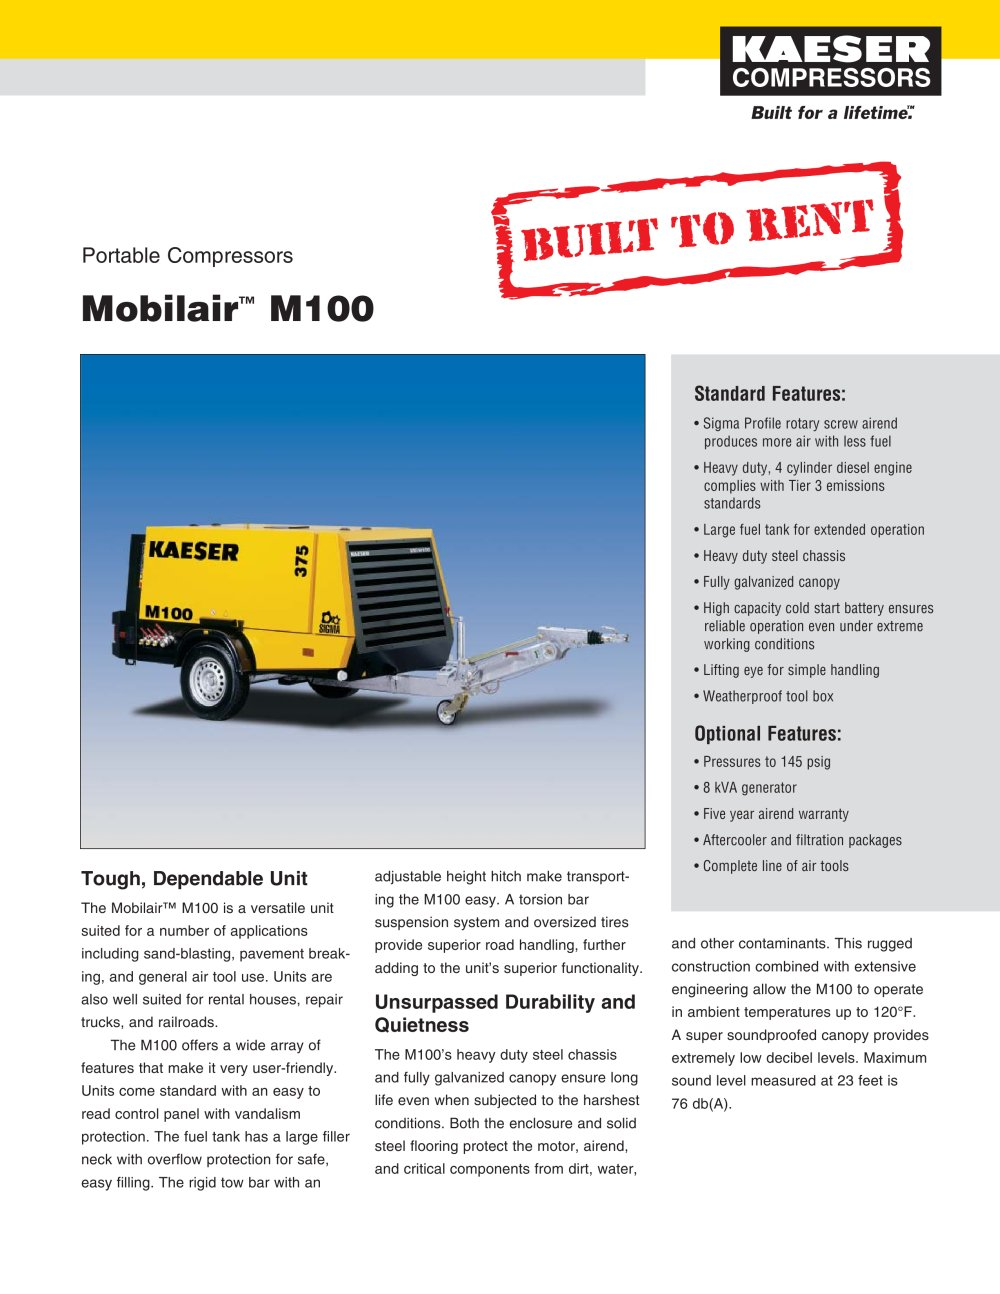 Mobilair M100 - 1 / 2 Pages